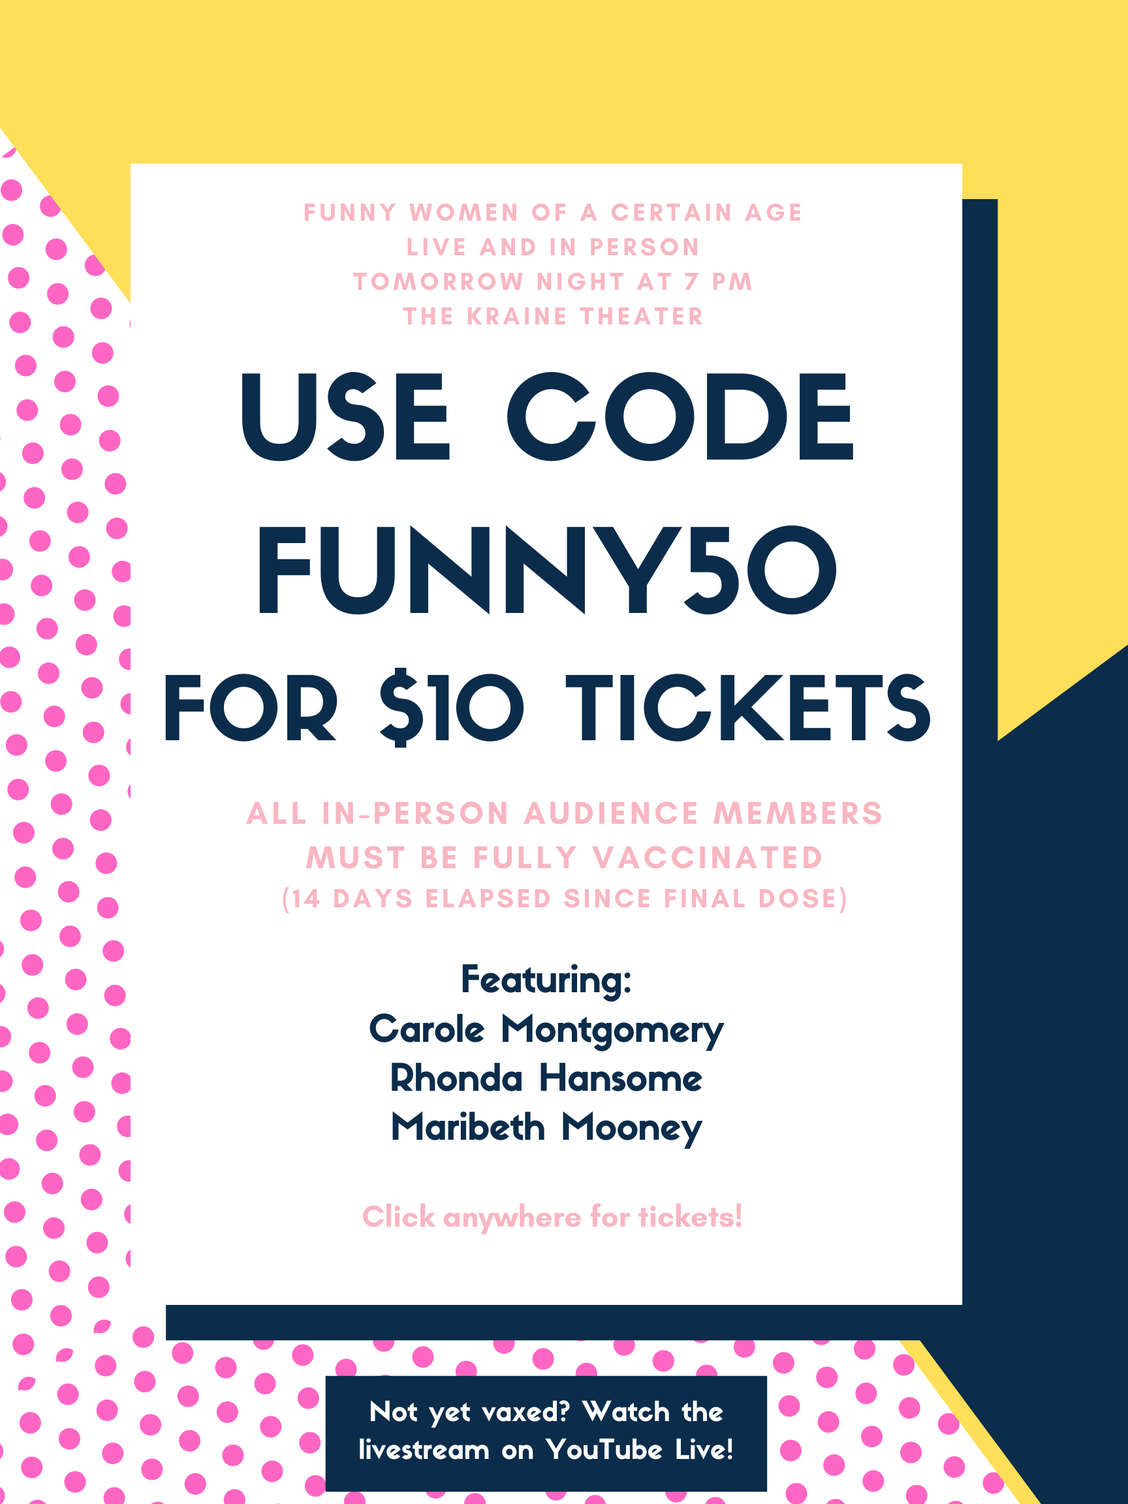 Use code FUNNY50 for $10 tickets to Funny Women of a Certain Age tomorrow night at 7 PM EST! All in-person audience members must be fully vaccinated and masked.